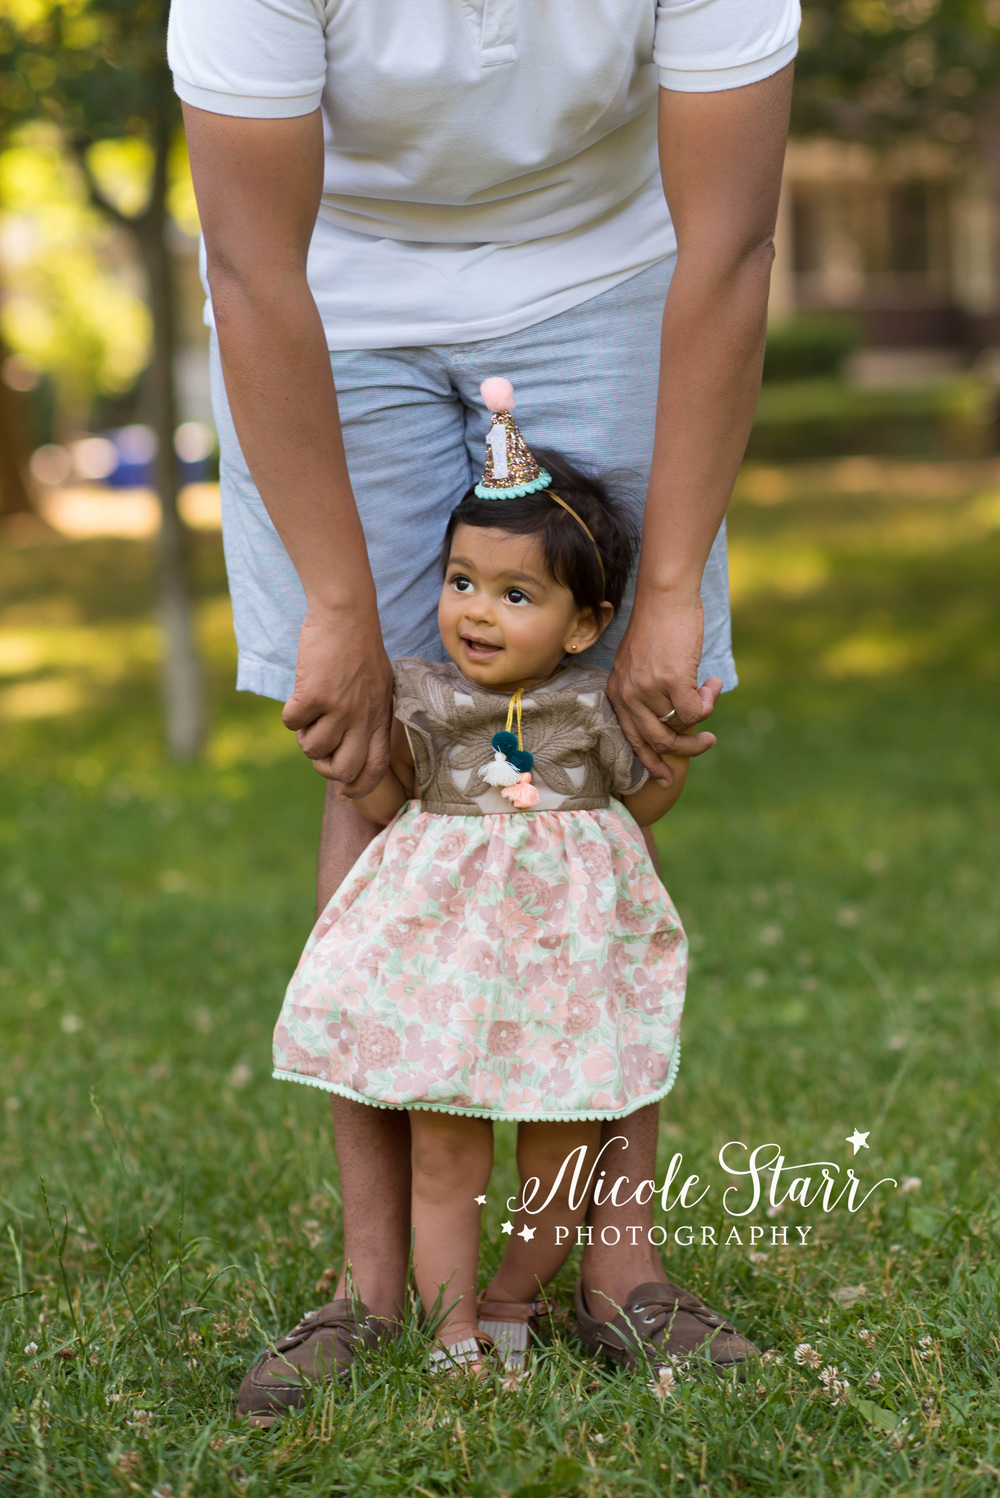 WM nicole starr photography-10.jpg